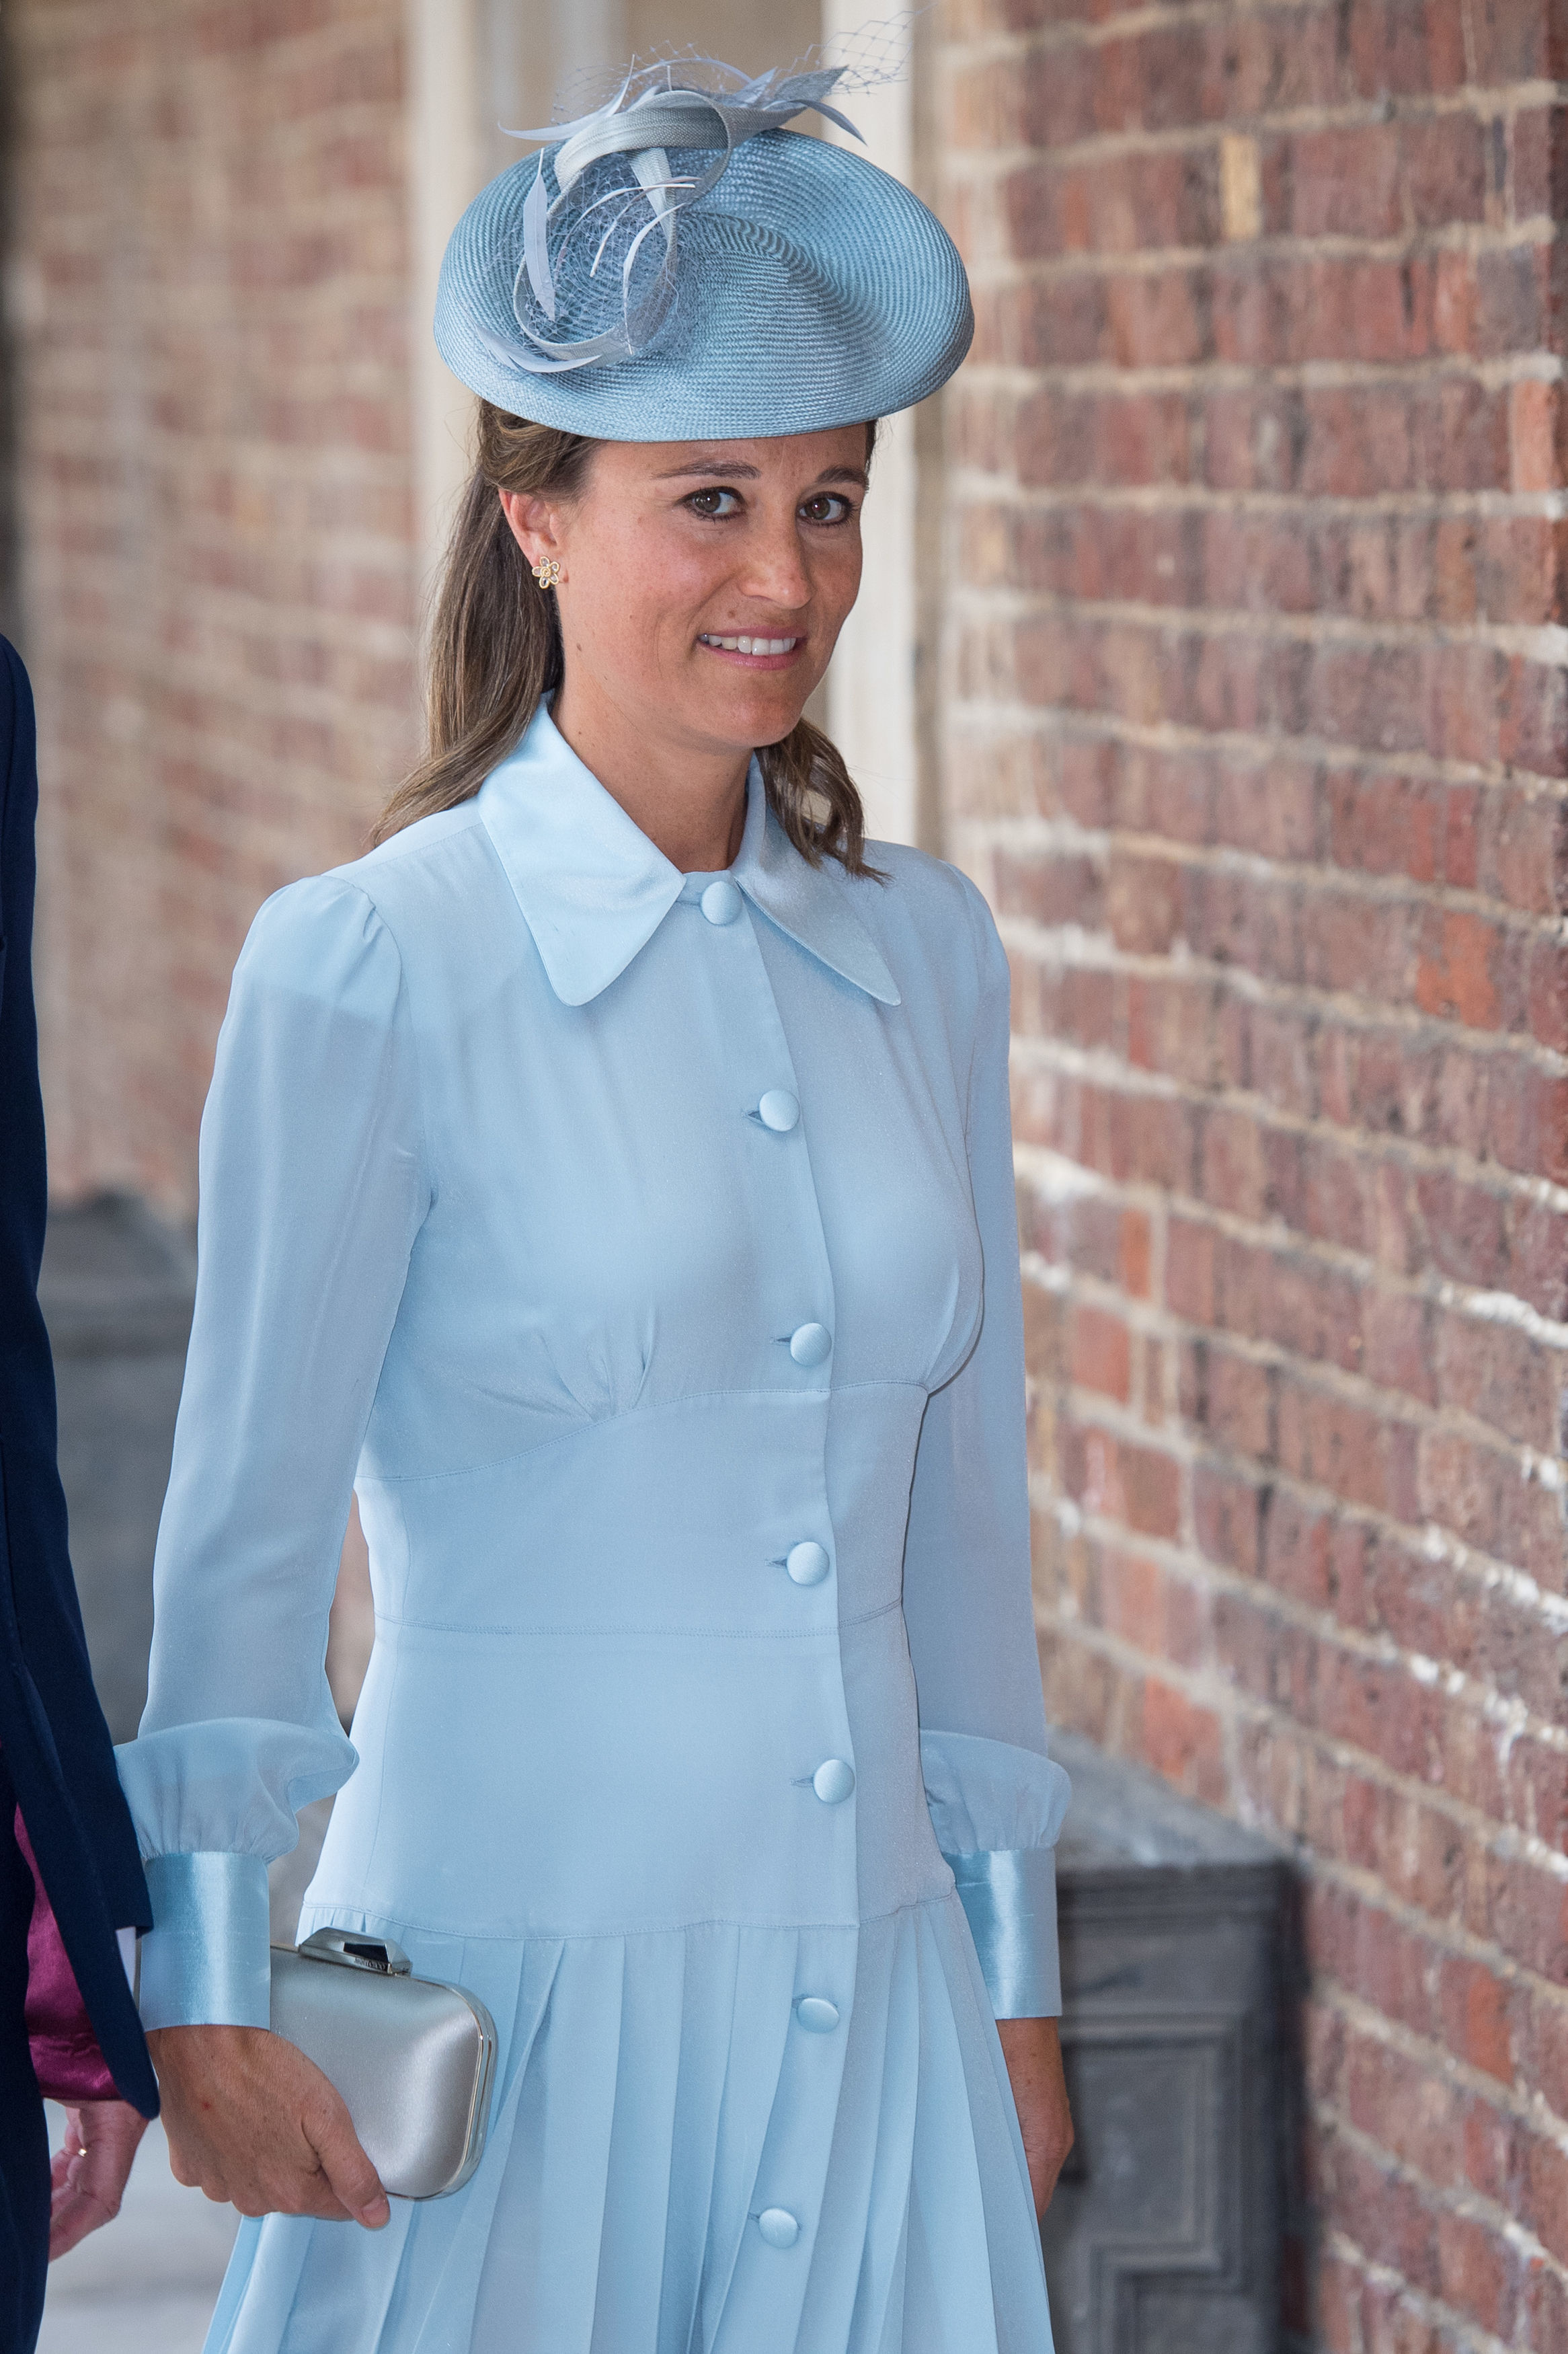 LONDON, ENGLAND - JULY 09: Pippa Middleton, the sister of Britain's Catherine, Duchess of Cambridge, attends the christening of Prince Louis at the Chapel Royal, St James's Palace on July 09, 2018 in London, England. (Photo by Dominic Lipinski - WPA Pool/Getty Images)